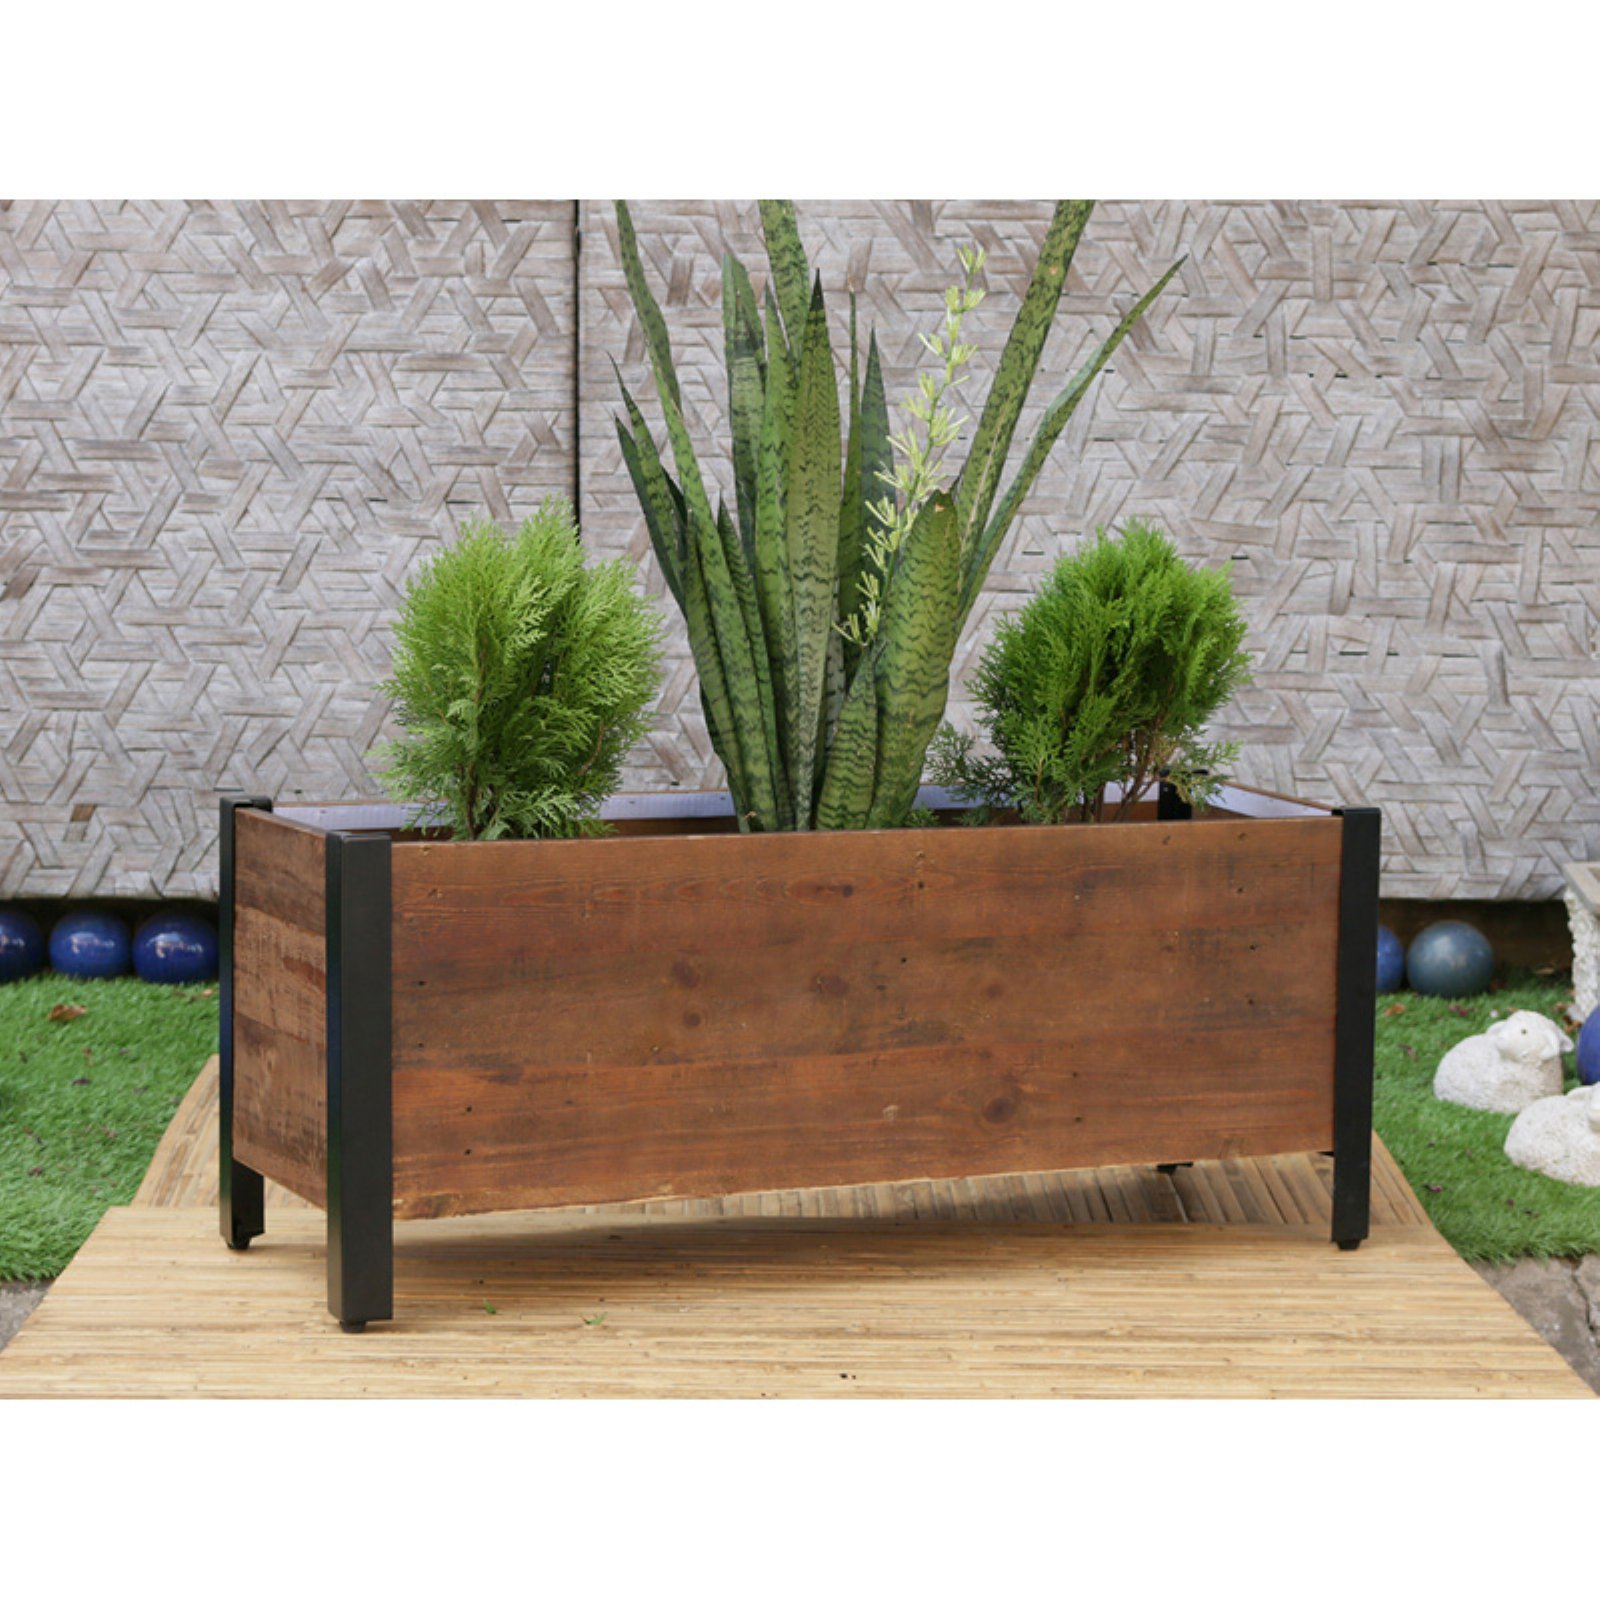 Grapevine Rectangular Urban Garden Wooden Planter Box by